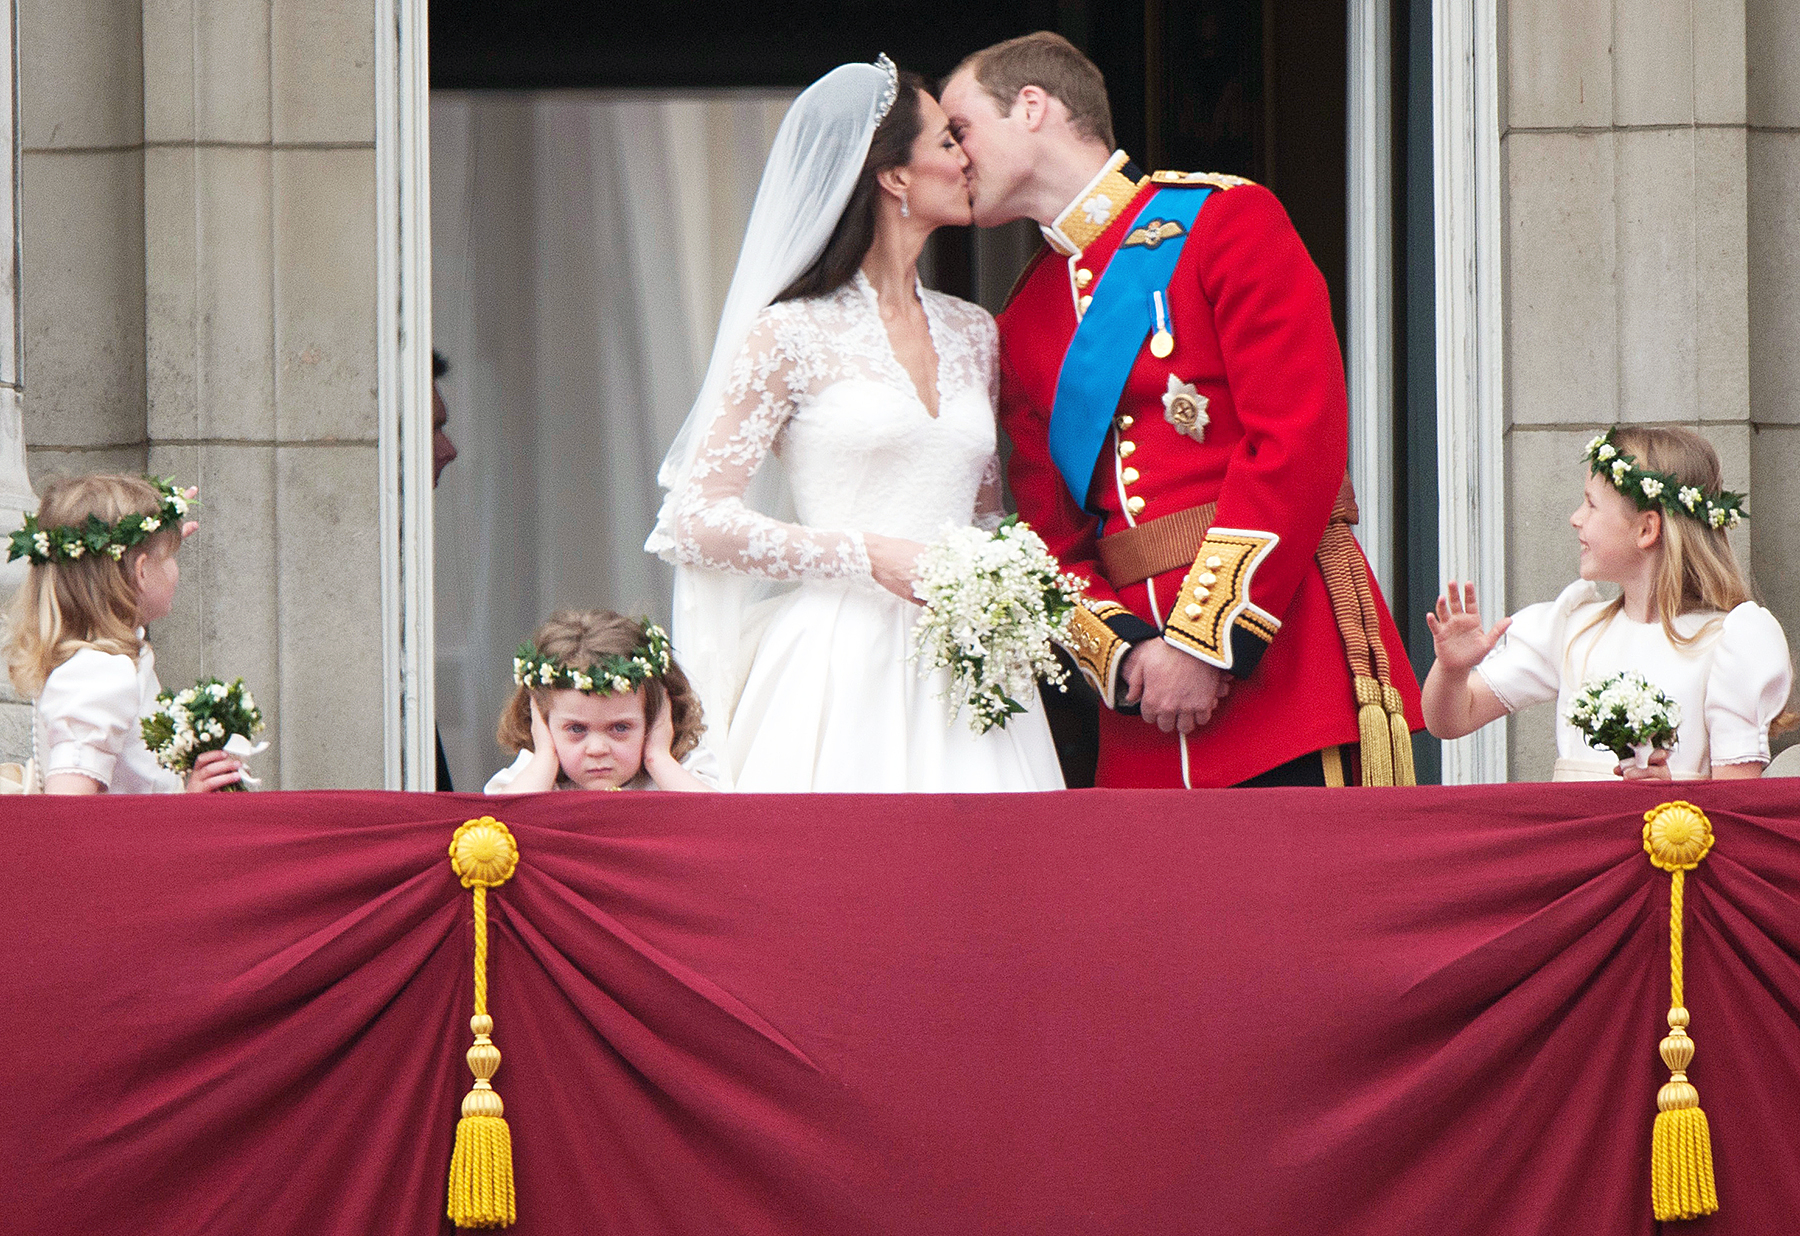 Kate Middleton and Prince William wedding kiss